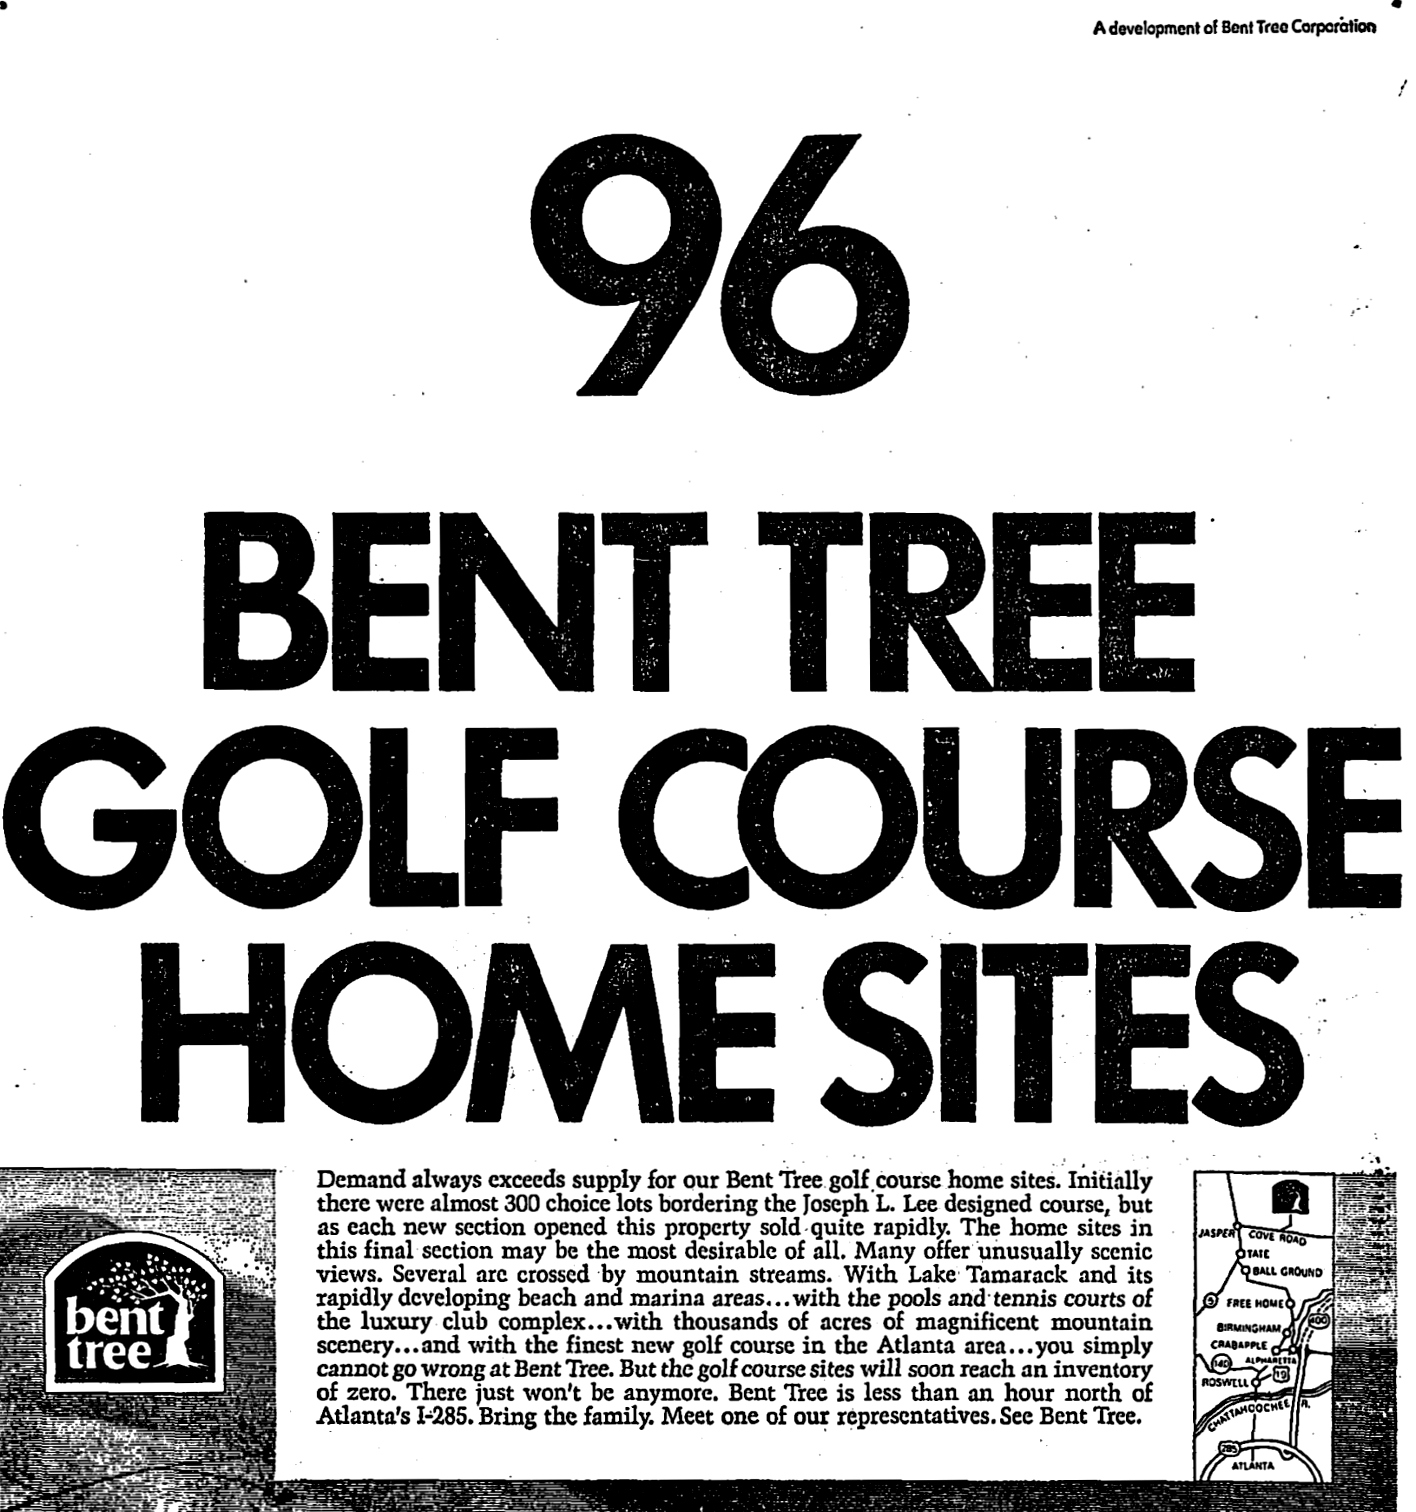 July 1972 Bent Tree advertisement